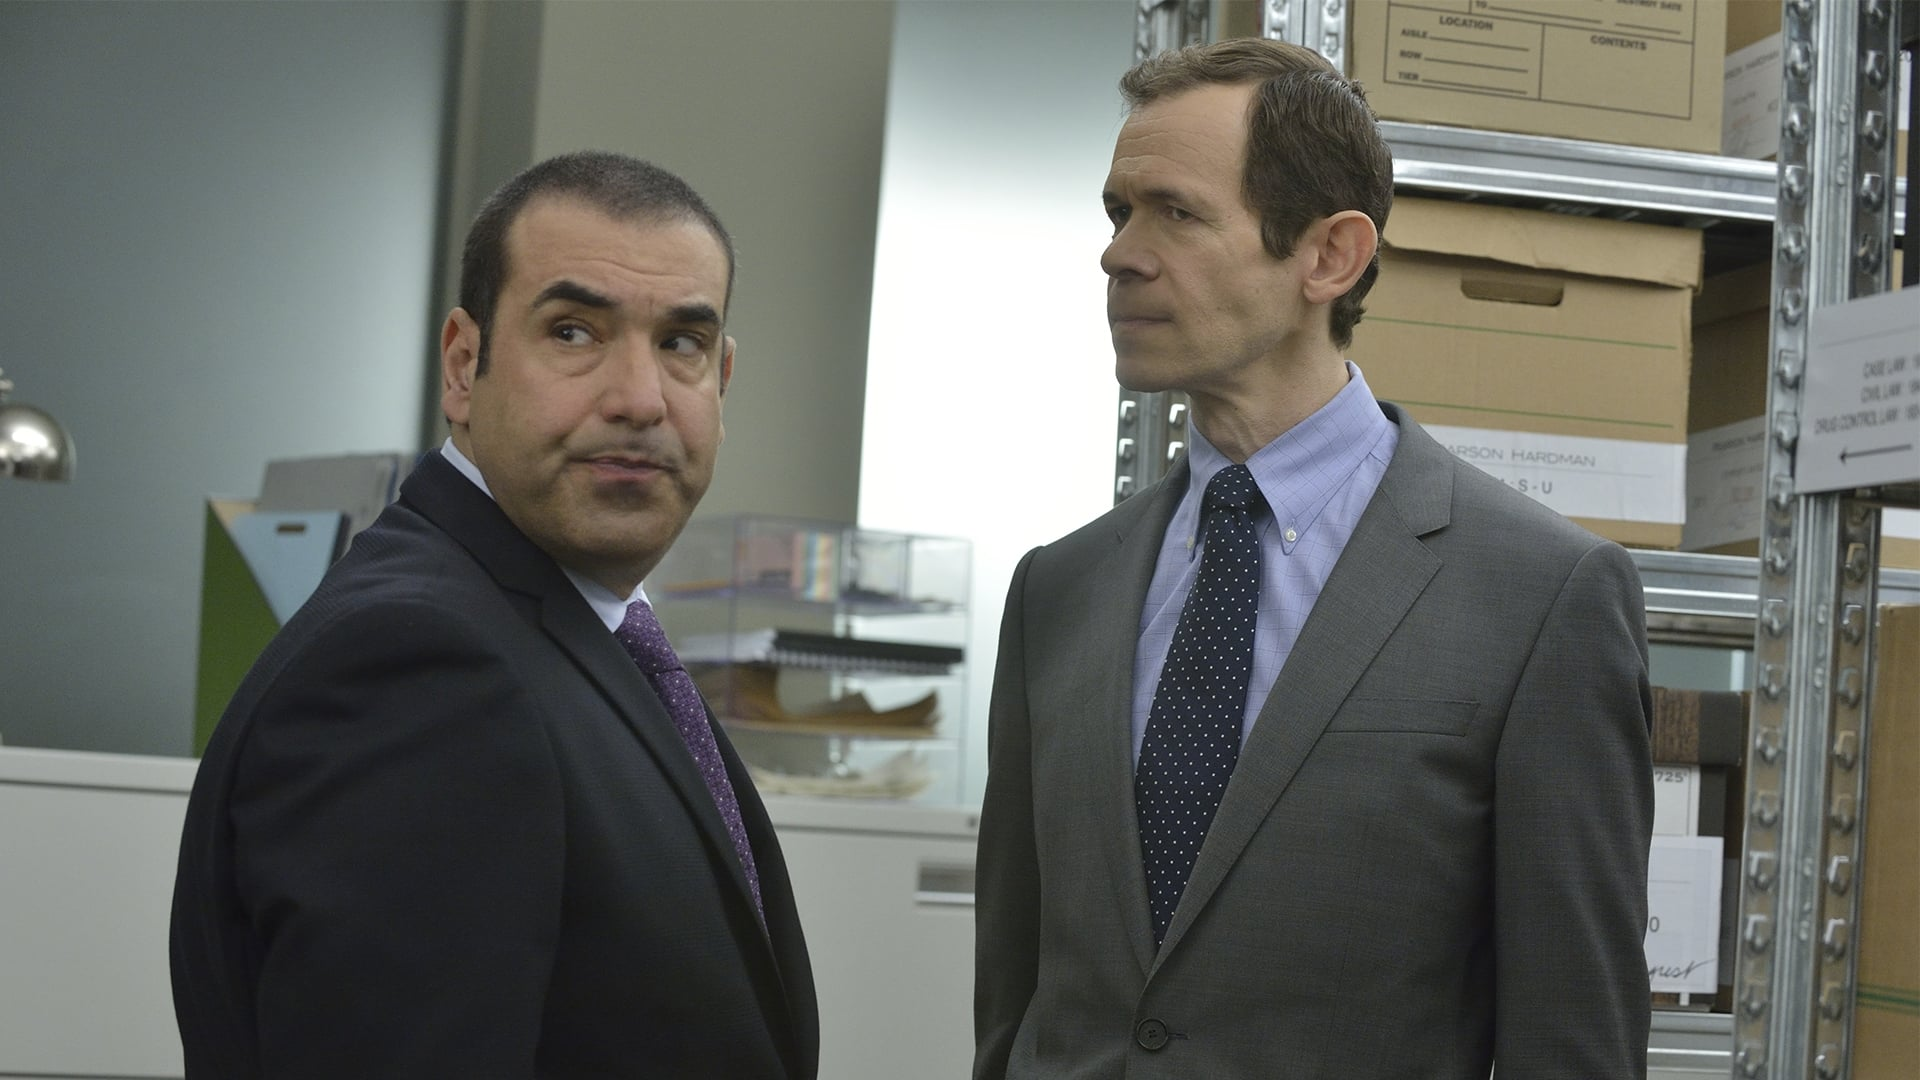 Synopsis: Watch Suits Season 3 online free. In Suits Season 3 Putlocker Full Episodes, While running from a drug deal gone bad, Mike Ross, a brilliant young college-dropout, slips into a job interview with one of New York City's best legal closers, Harvey Specter.